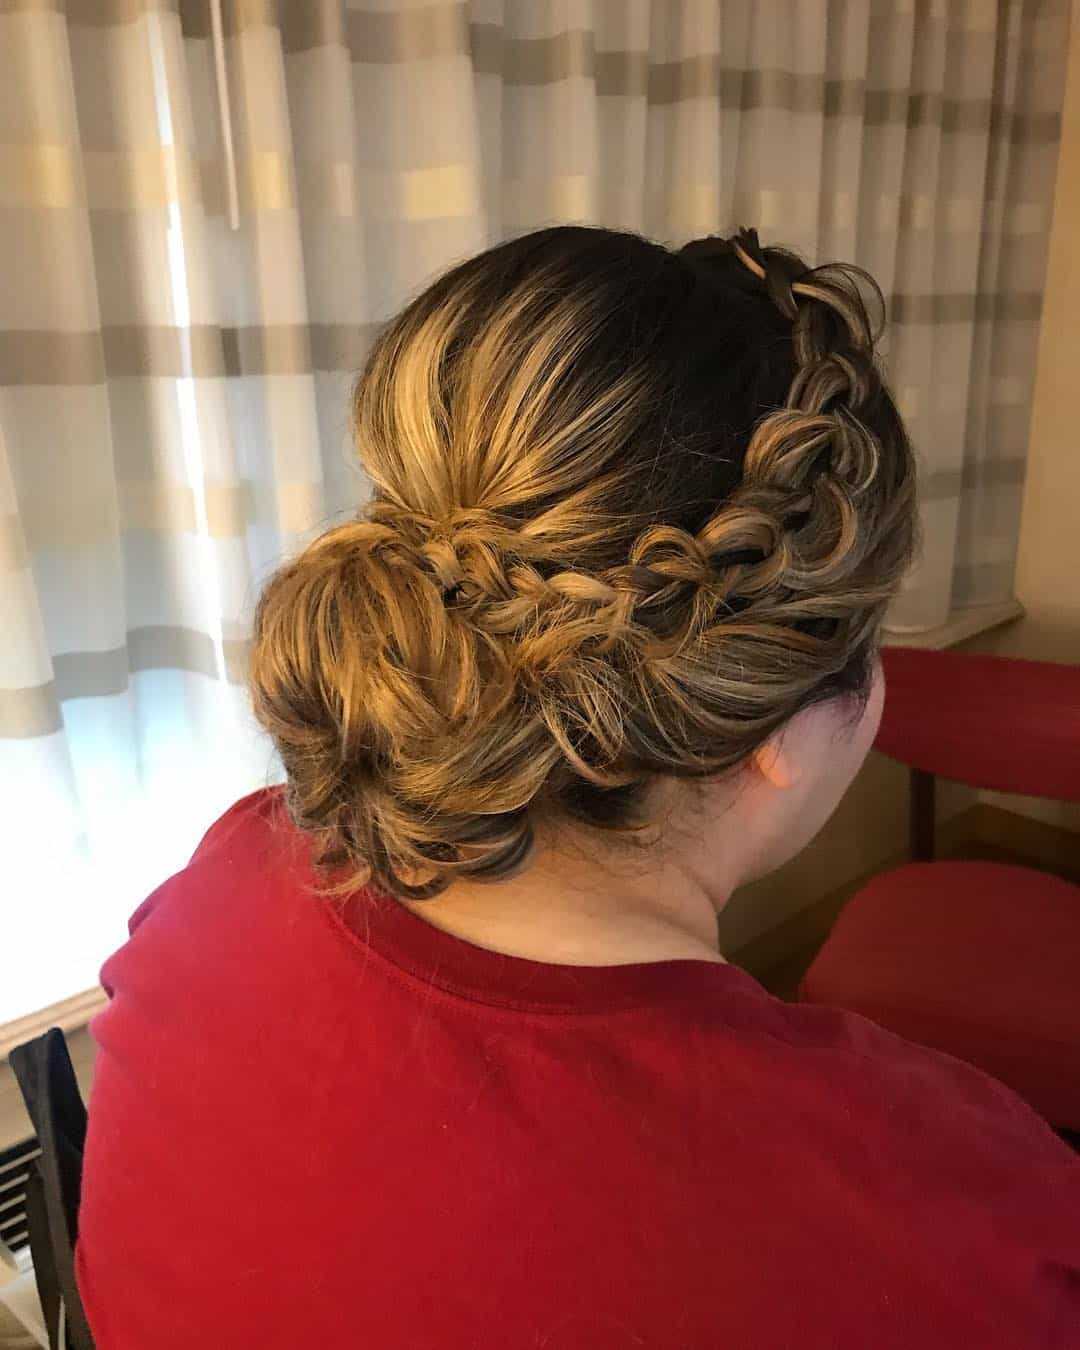 Quinceanera Hairstyles: 12 Stunning Quinceanera Hairstyles With Updos